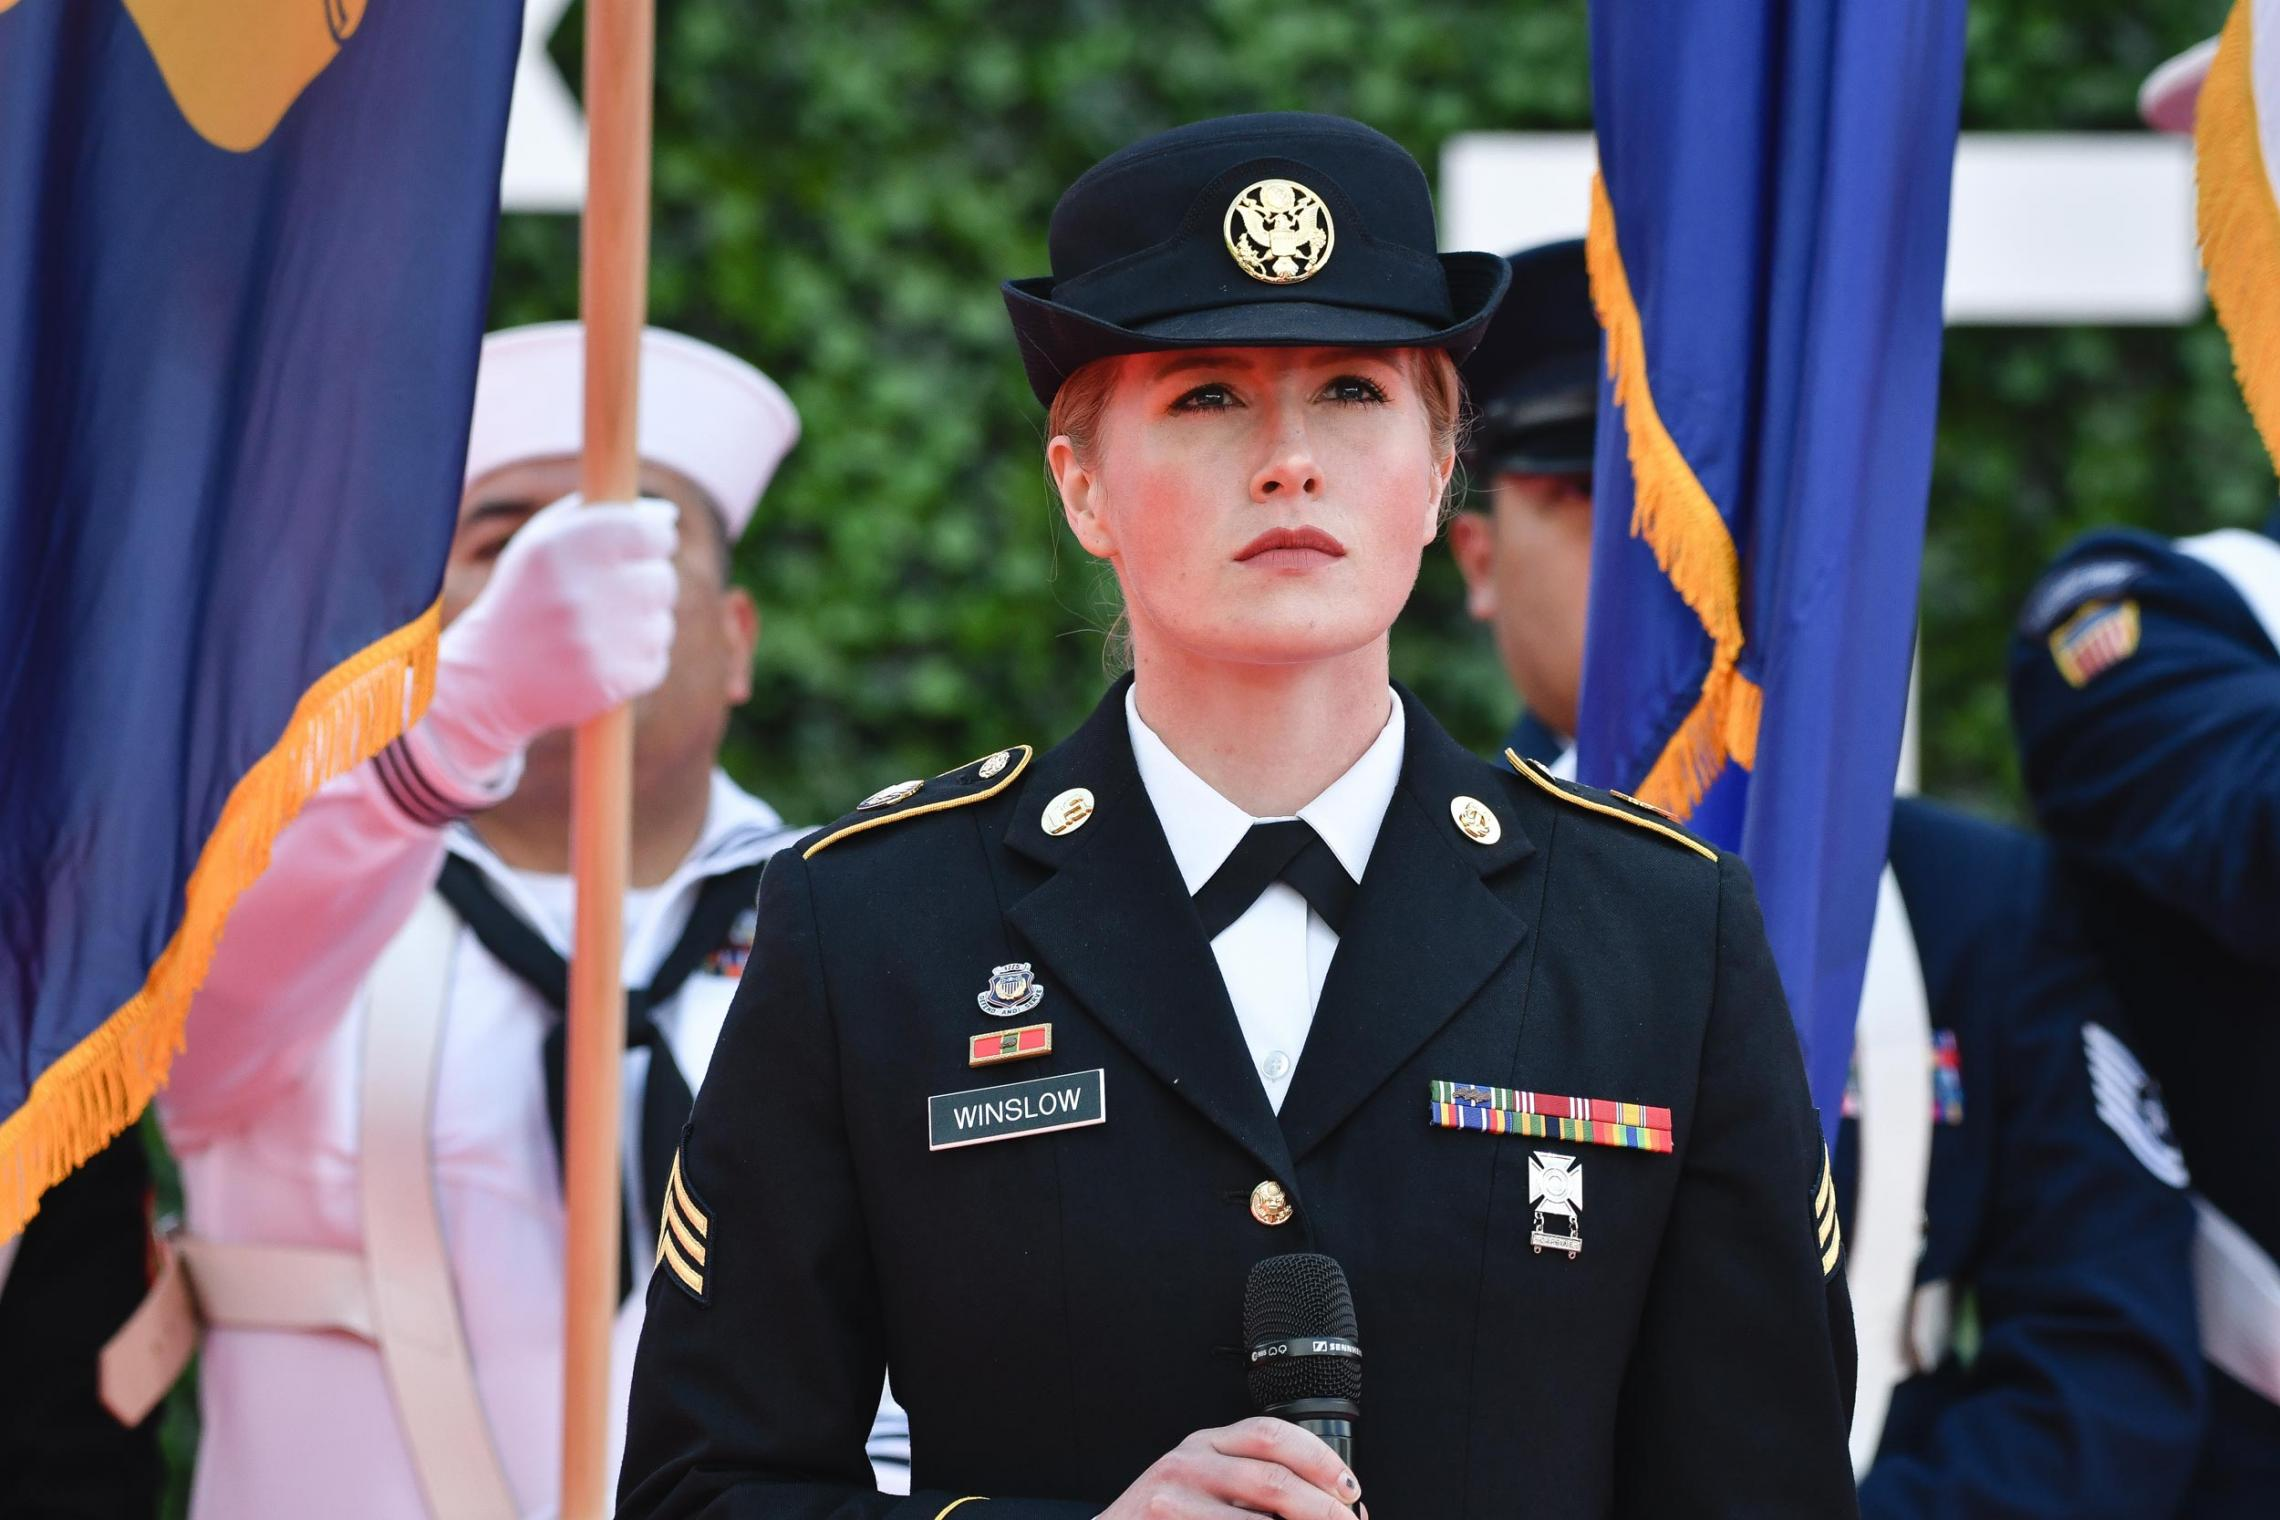 Kayla Winslow joined the Army in 2015, serving with Army bands in Colorado and now in Germany. (Photo: Sgt. Henry Villarama, U.S. Army)